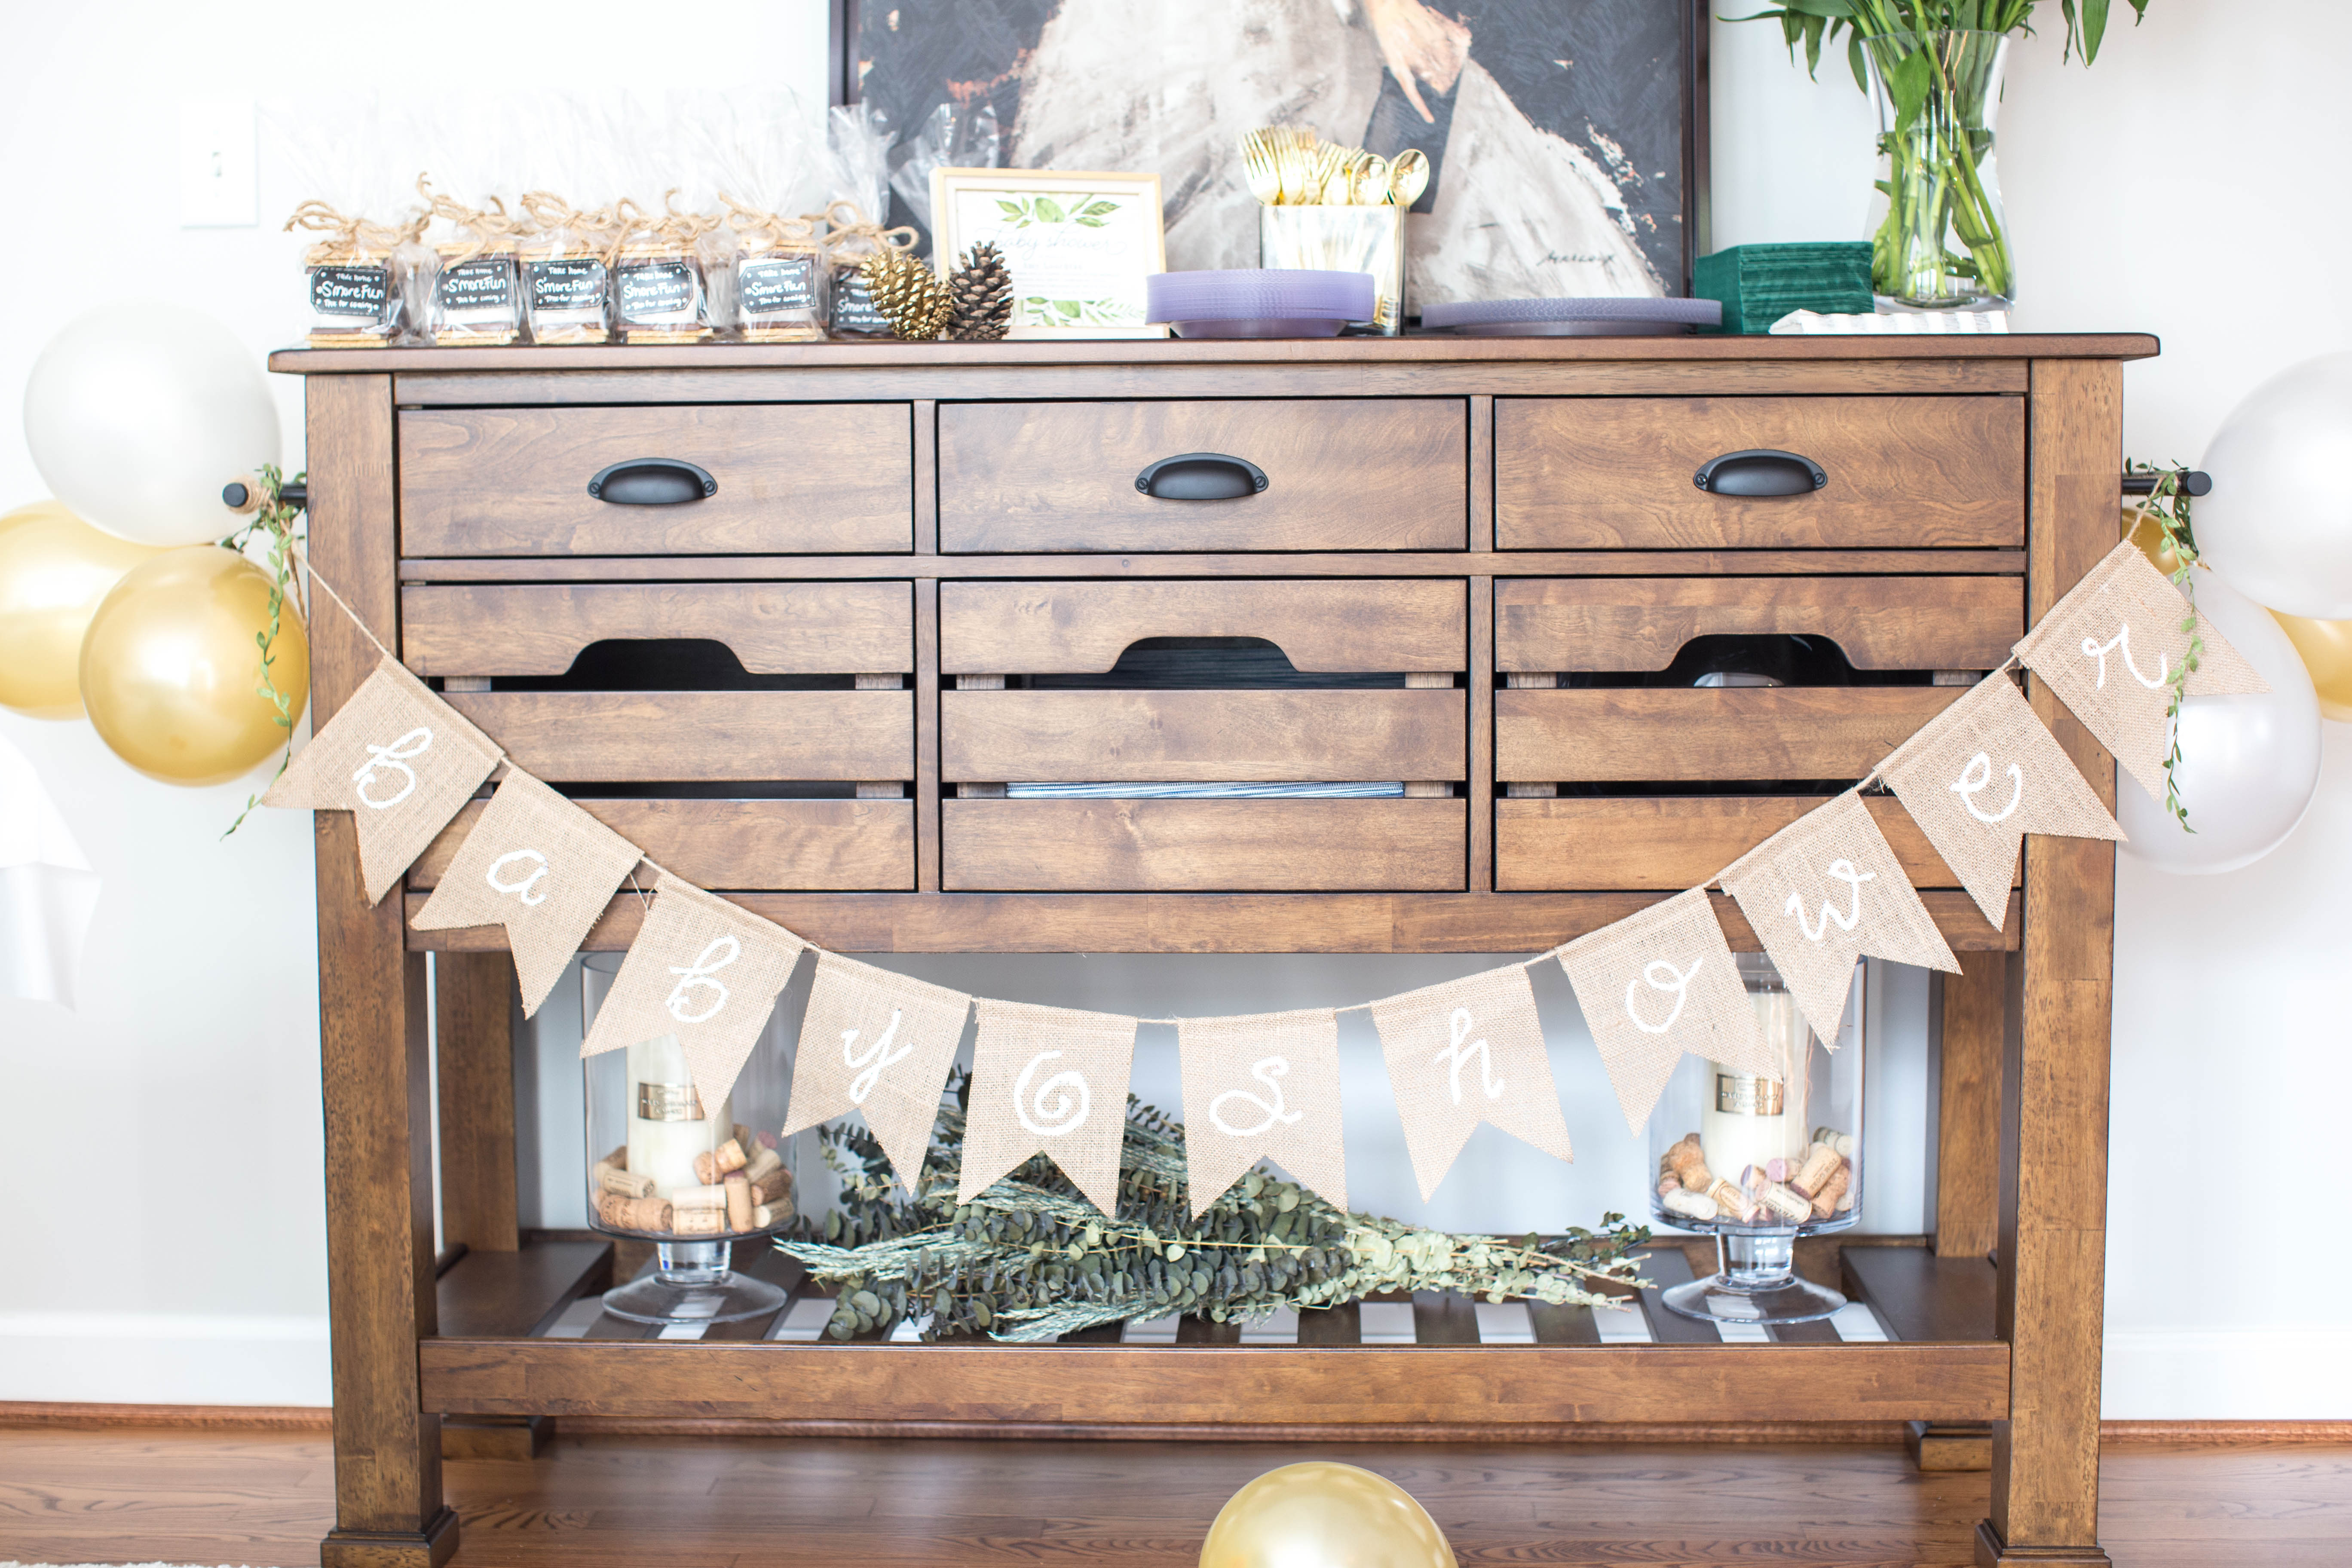 Baby Shower Decor - Favorites Lately: Newton Baby Crib Mattress by North Carolina style blogger Coffee Beans and Bobby Pins